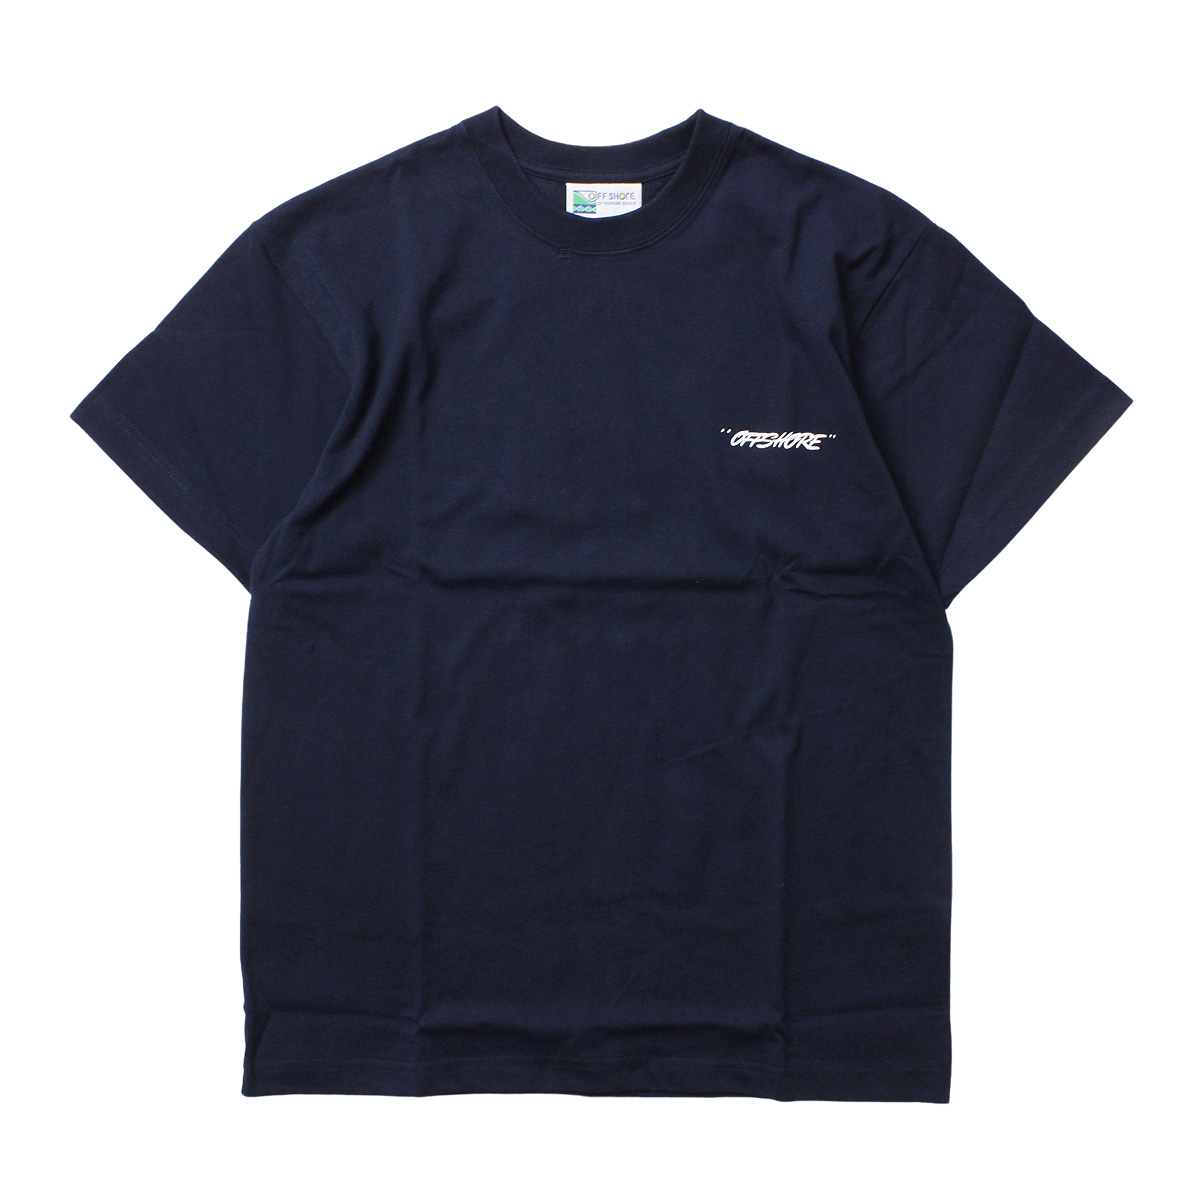 OFFSHORE オフショア DOWN THE LINE TEE